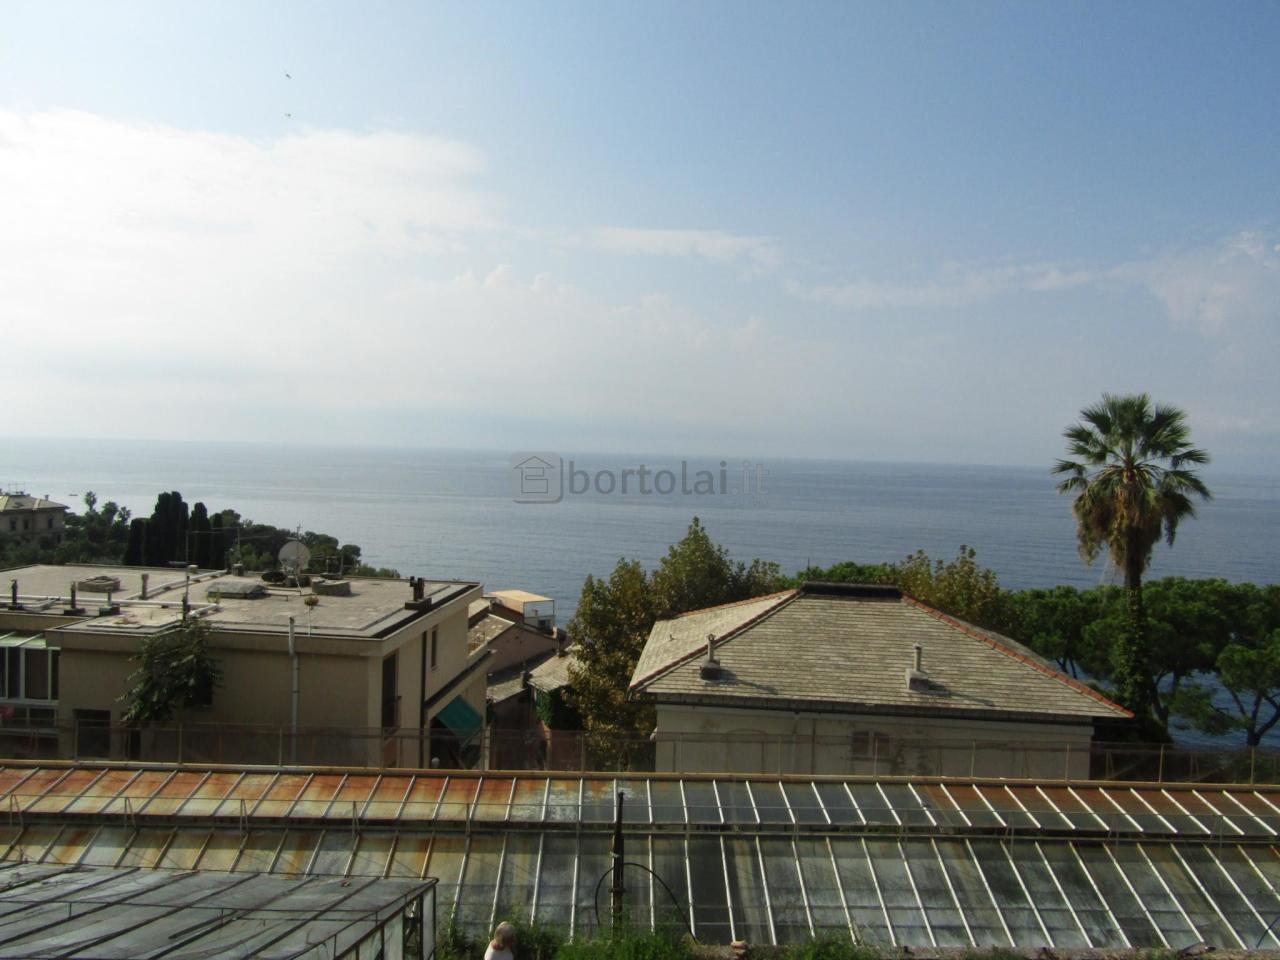 Apartment, 3.000 Mq, Sale - Pieve Ligure